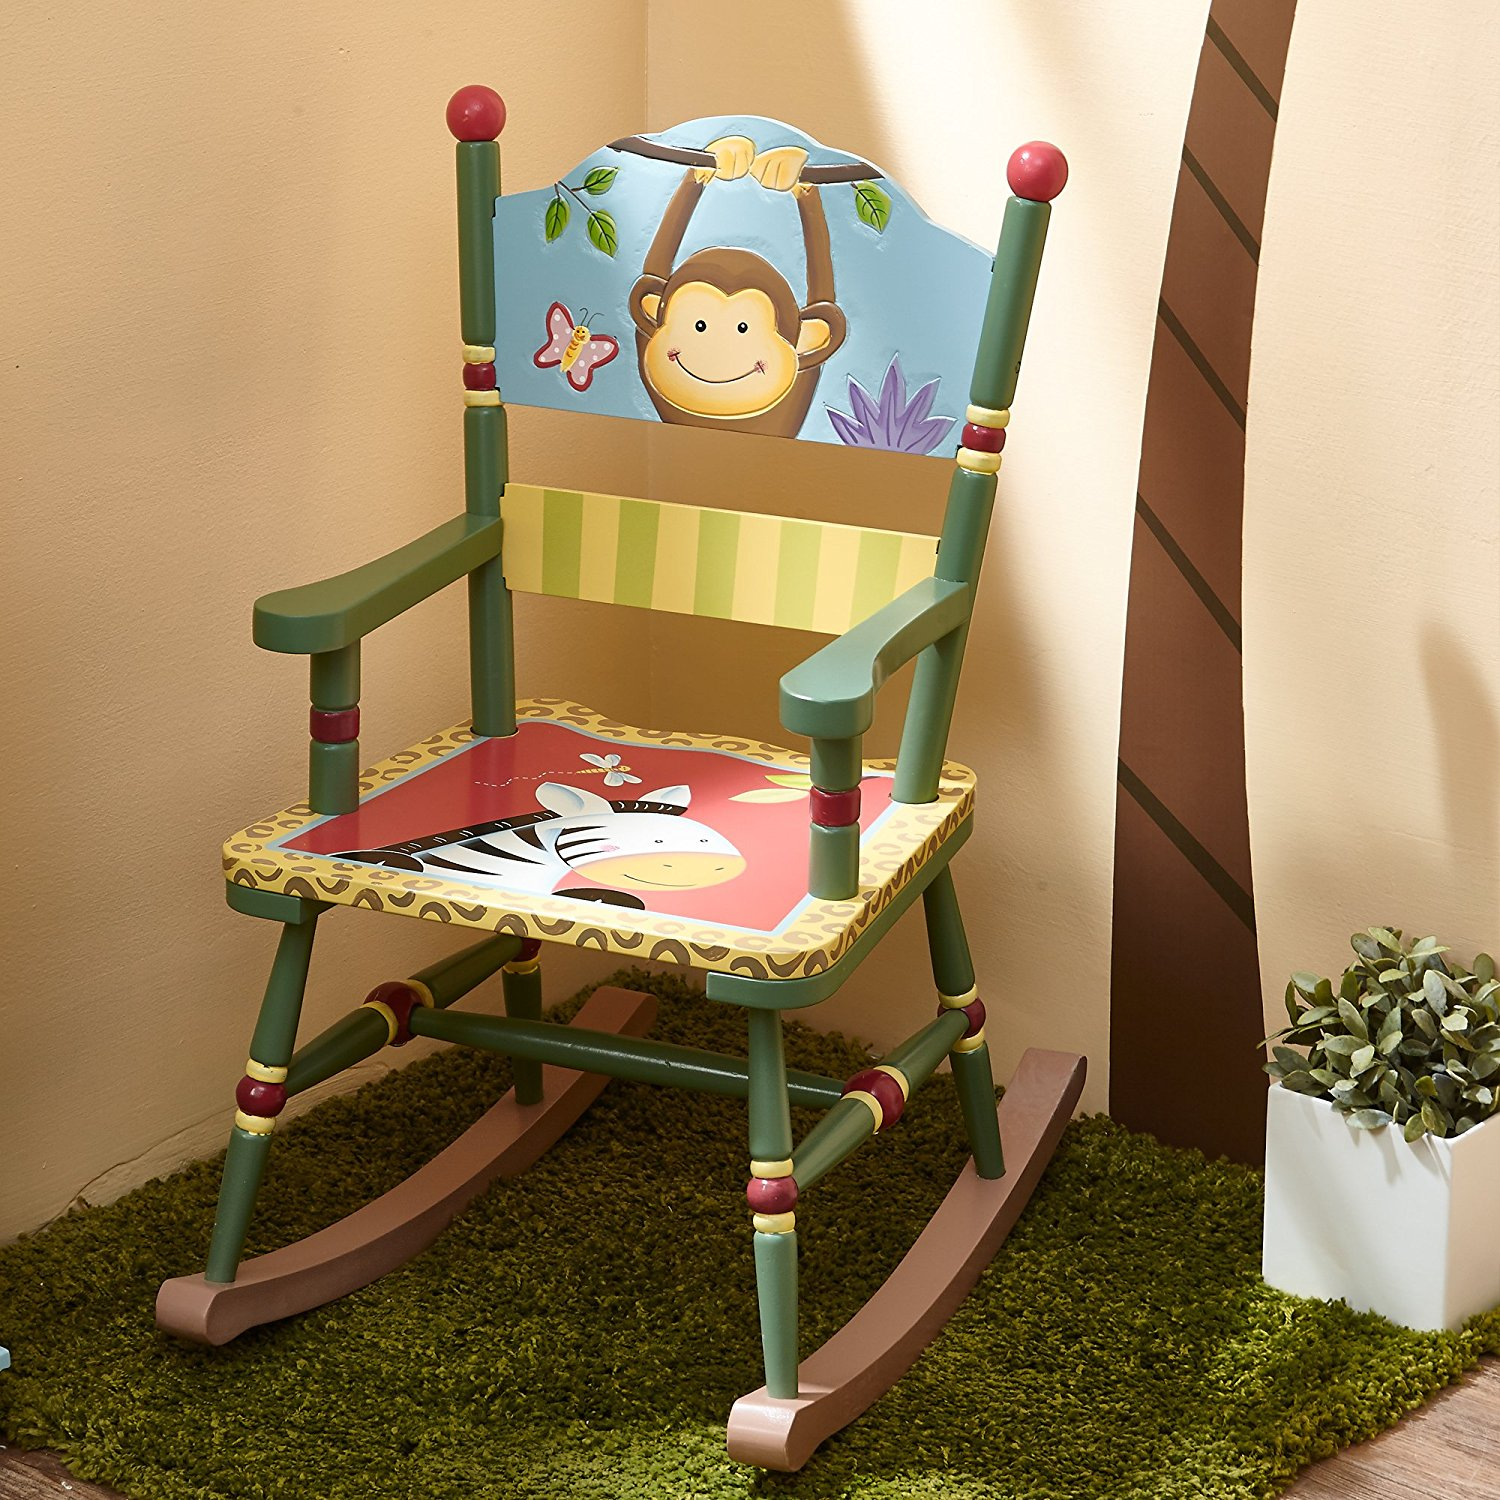 toddler wooden rocking chair round table with 4 chairs fantasy fields sunny safari animals thematic kids imagination inspiring hand crafted painted details non toxic